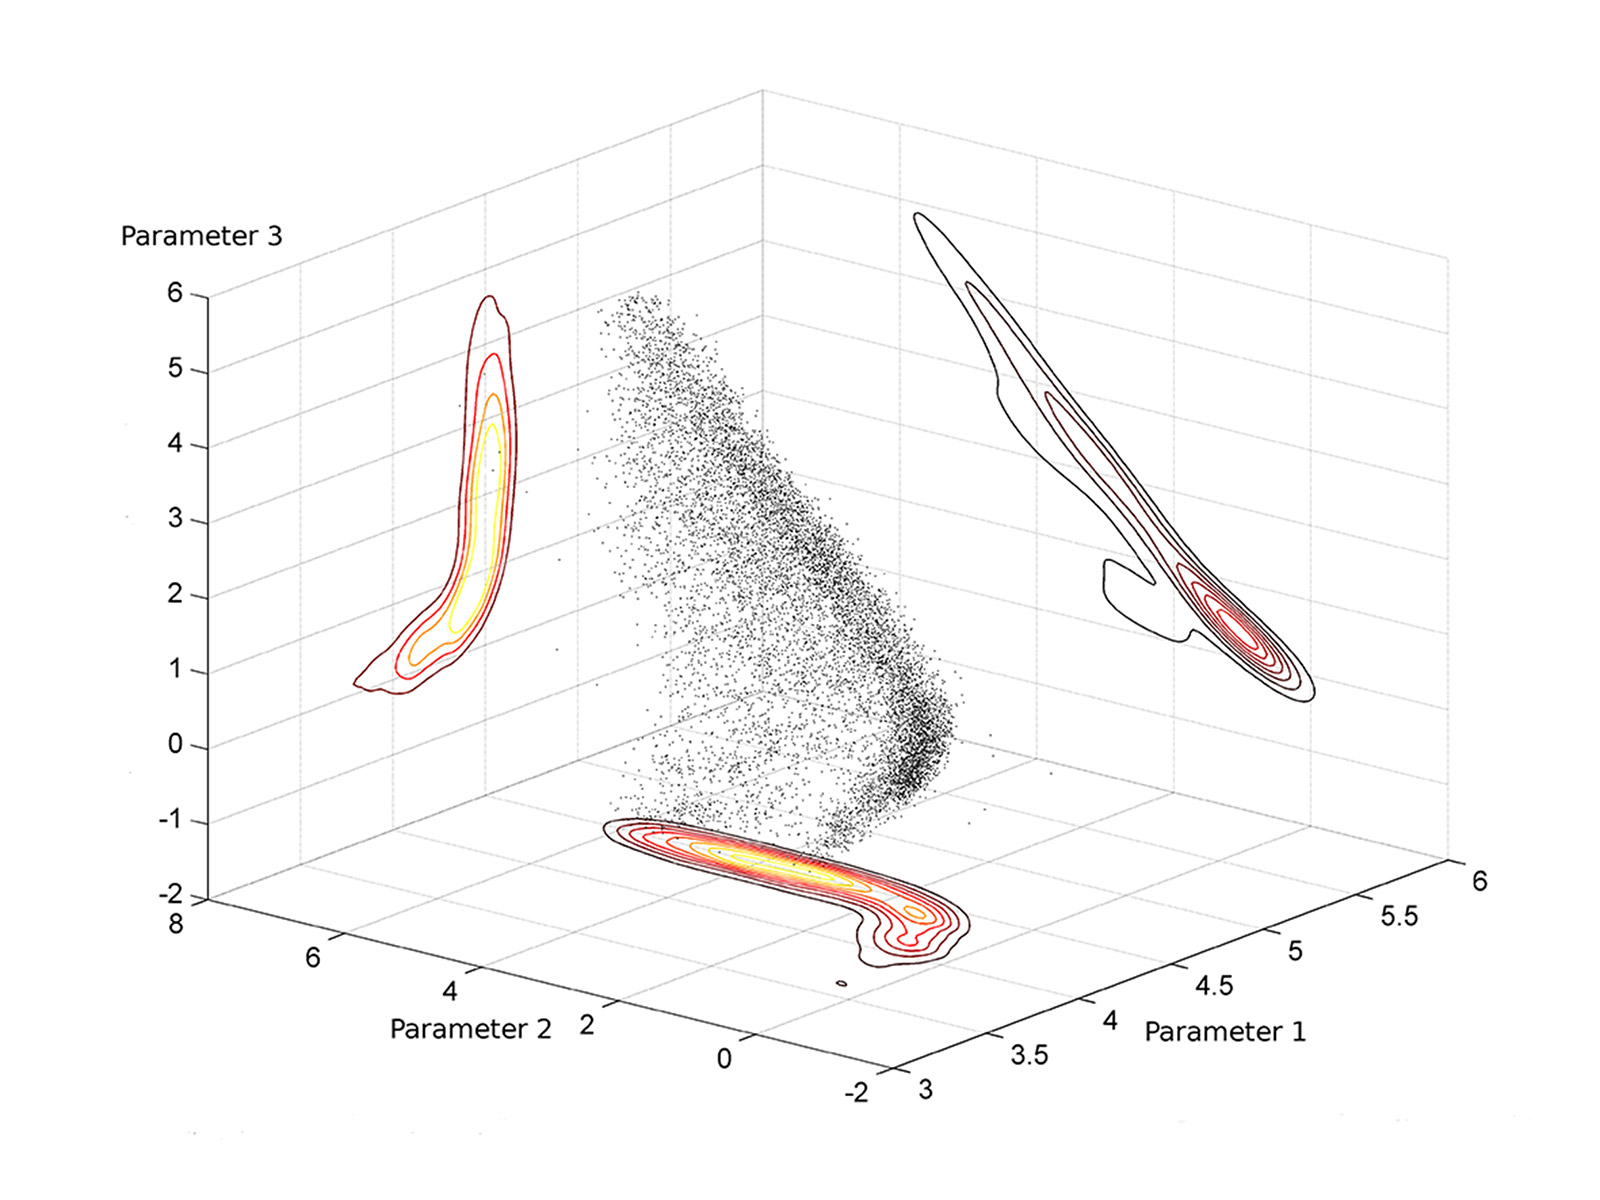 Sample from a probability distribution in the parameter space that shows a highly correlated structure.